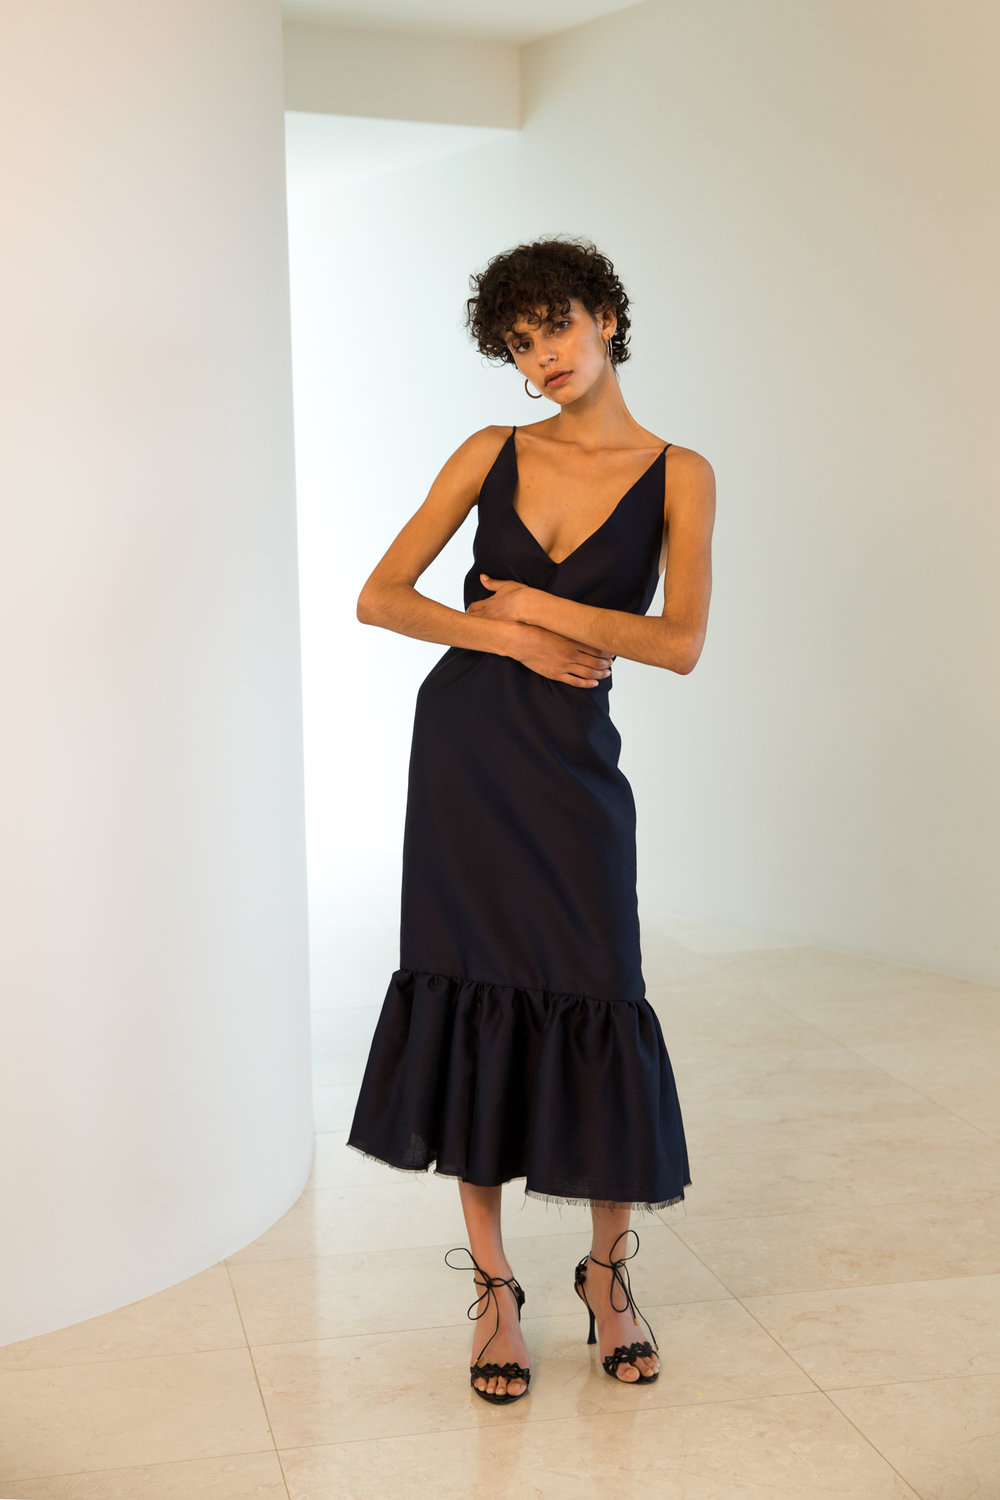 PF_RuffleDress_Resort18LookBook0007.jpg